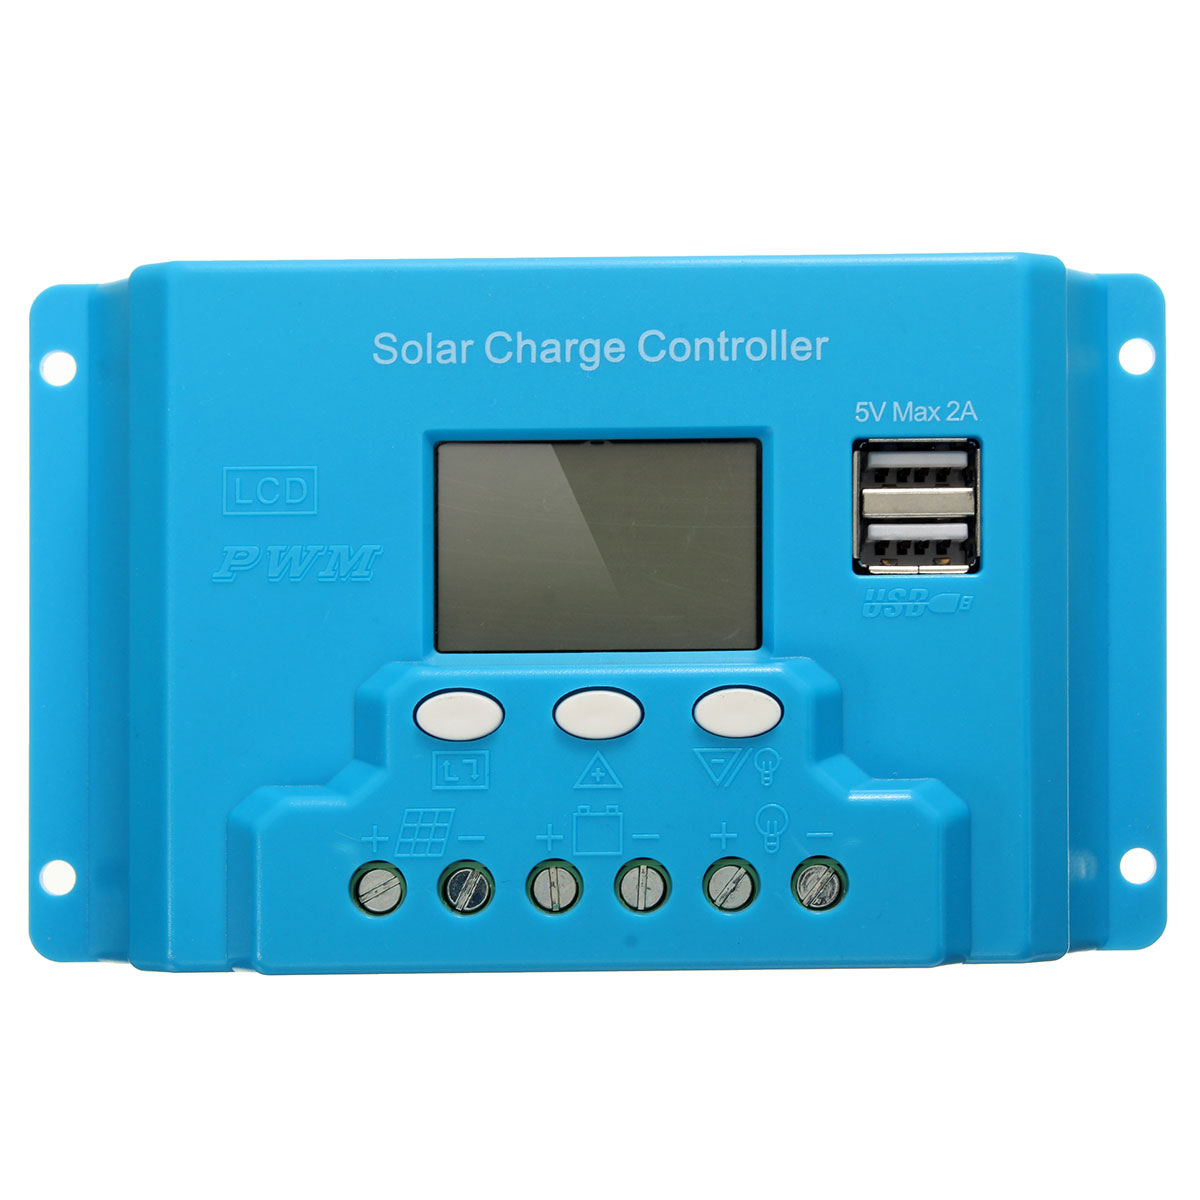 10A 20A 30A LCD PWM Solar Panel Charge Controller Battery Regulator 12V/24V with Dual USB игрушка для ванной alex alex игрушка для ванной черепашка